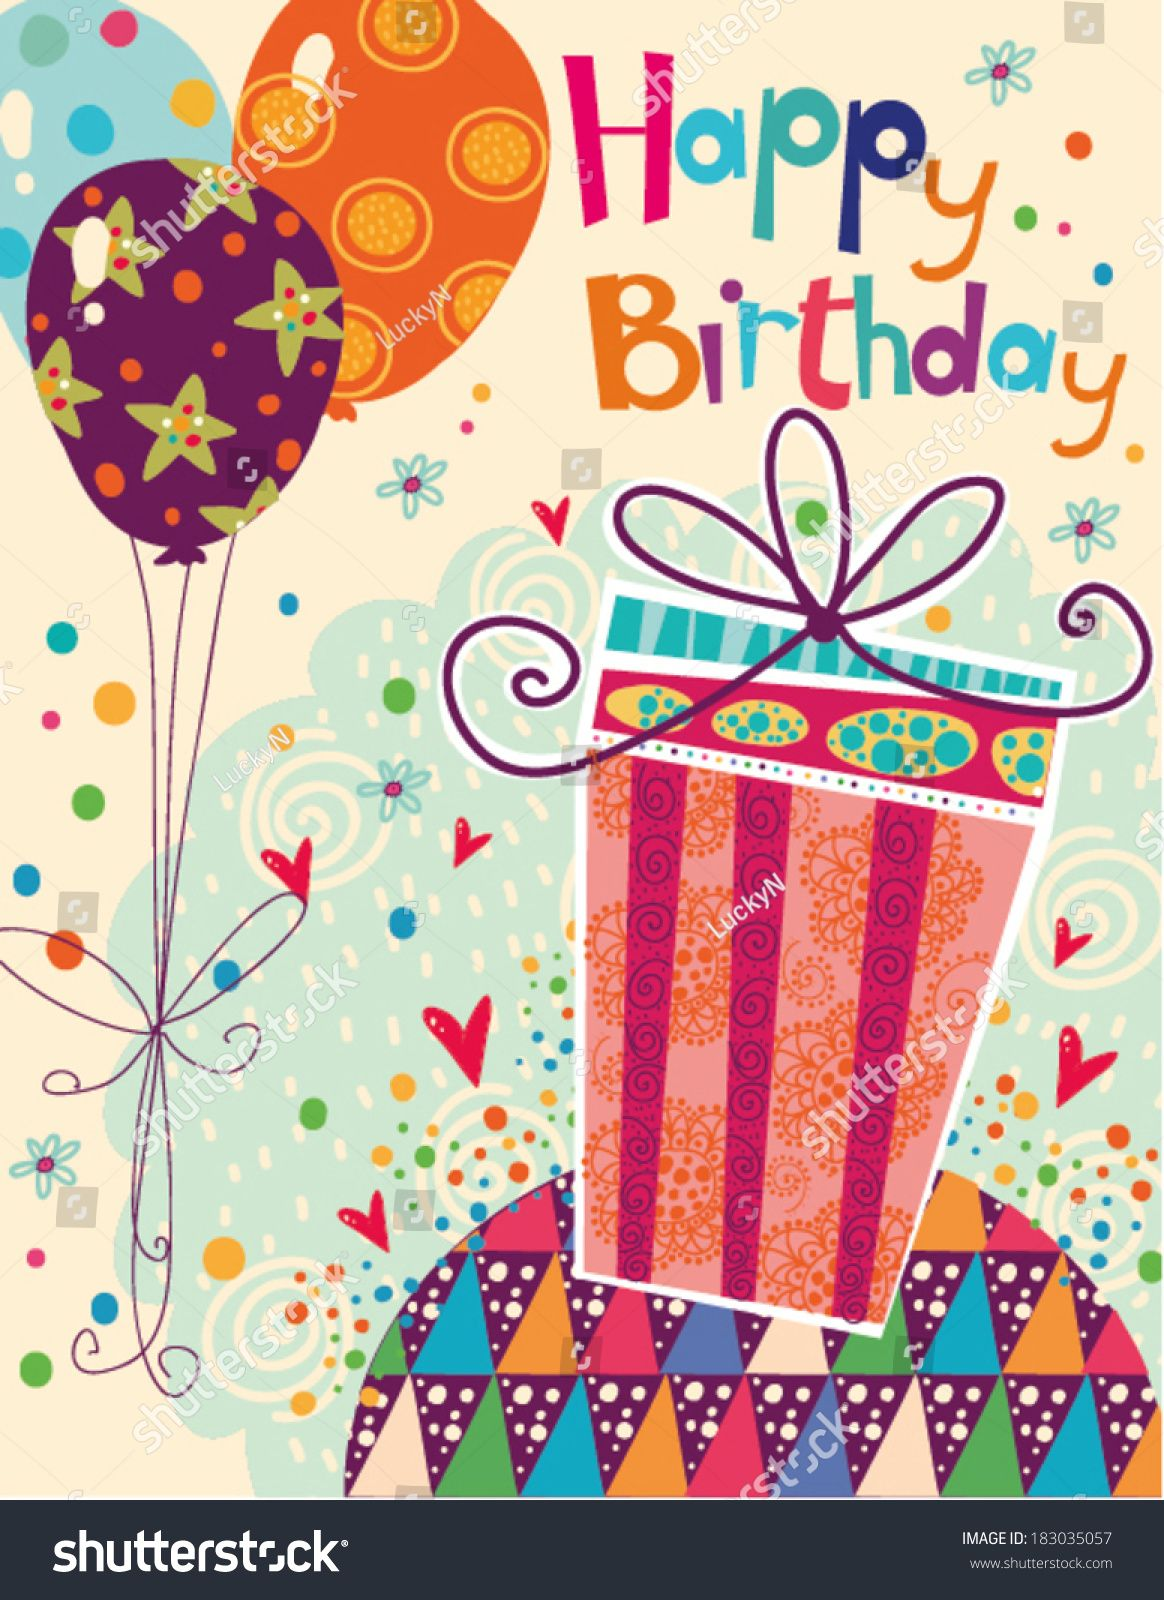 Beautiful Happy Birthday Greeting Card With Gift And Balloons In Bright Colors Vector